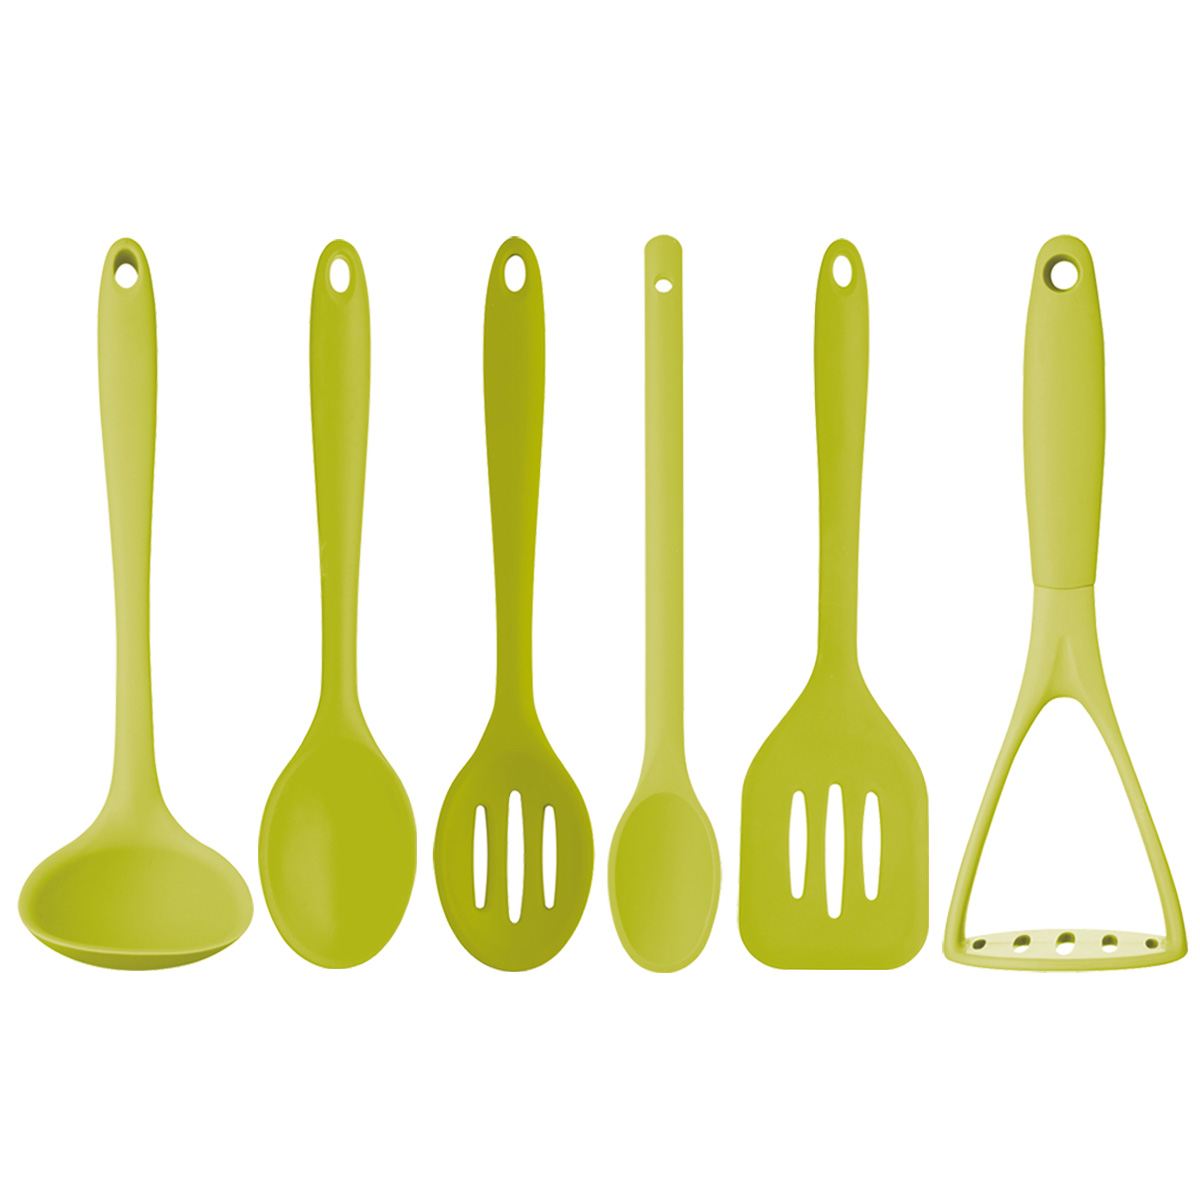 Lime Green 6 Pack Silicone Cooking Utensils Unique Home Living